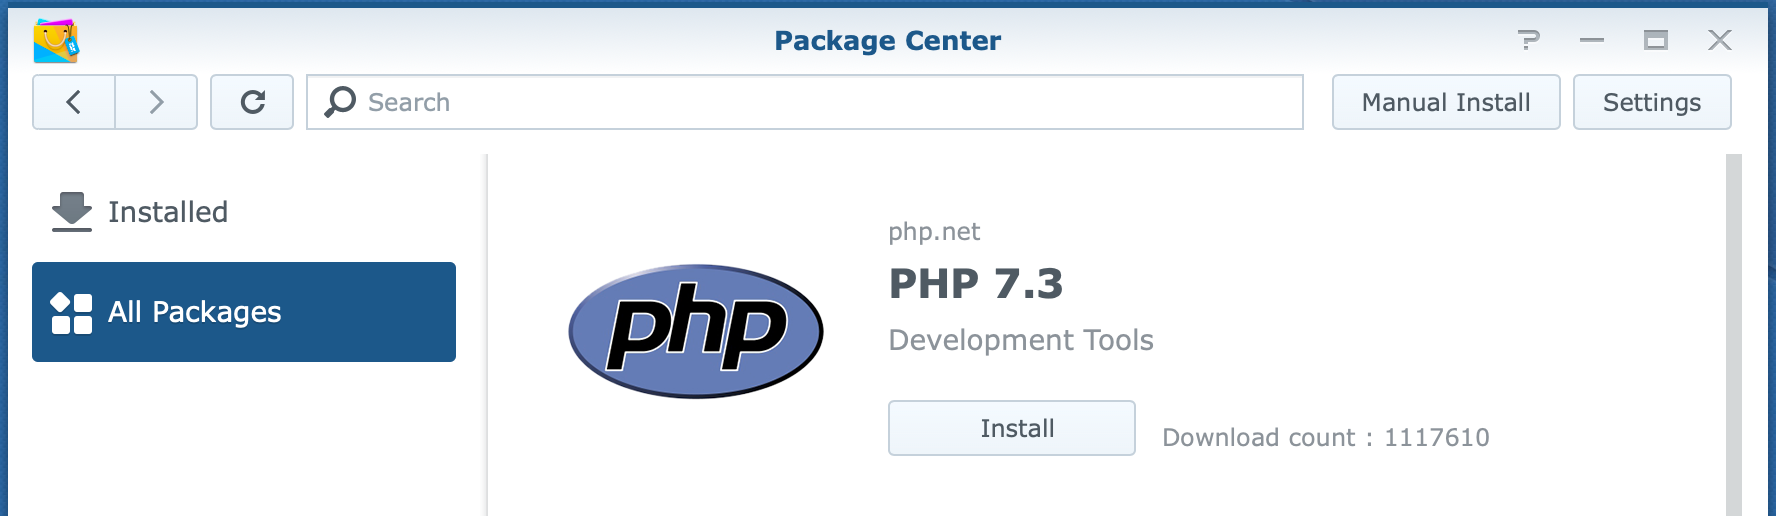 synology, package center, php 7.3, dsm6